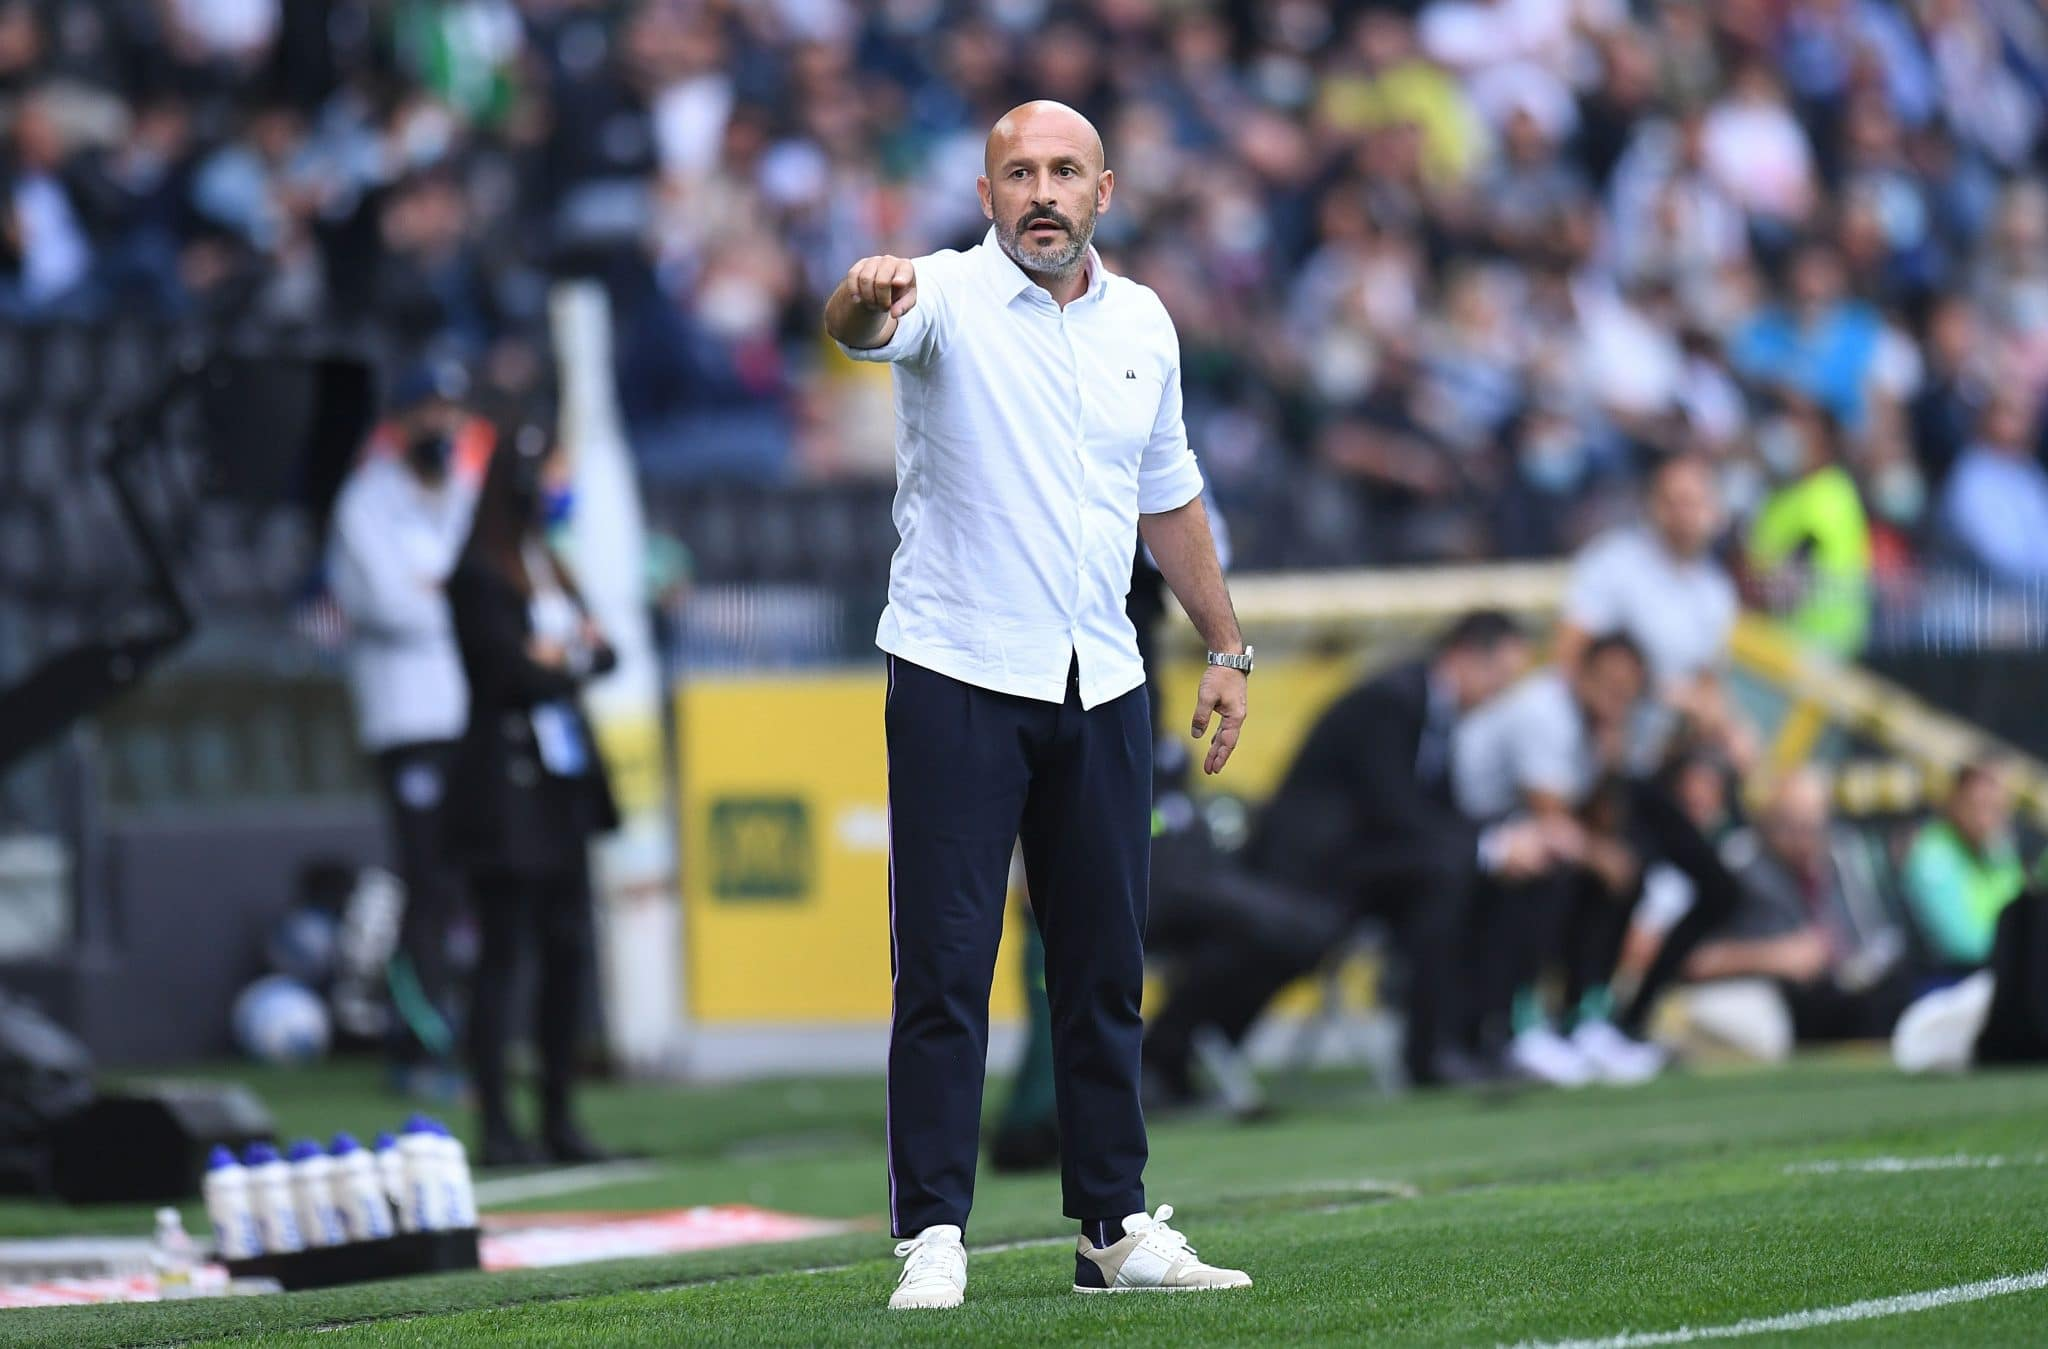 UDINE, ITALY - SEPTEMBER 26: Vincenzo Italiano head coach of ACF Fiorentina  gestures during the Serie A match between Udinese Calcio and ACF Fiorentina at Dacia Arena on September 26, 2021 in Udine, Italy. (Photo by Alessandro Sabattini/Getty Images)